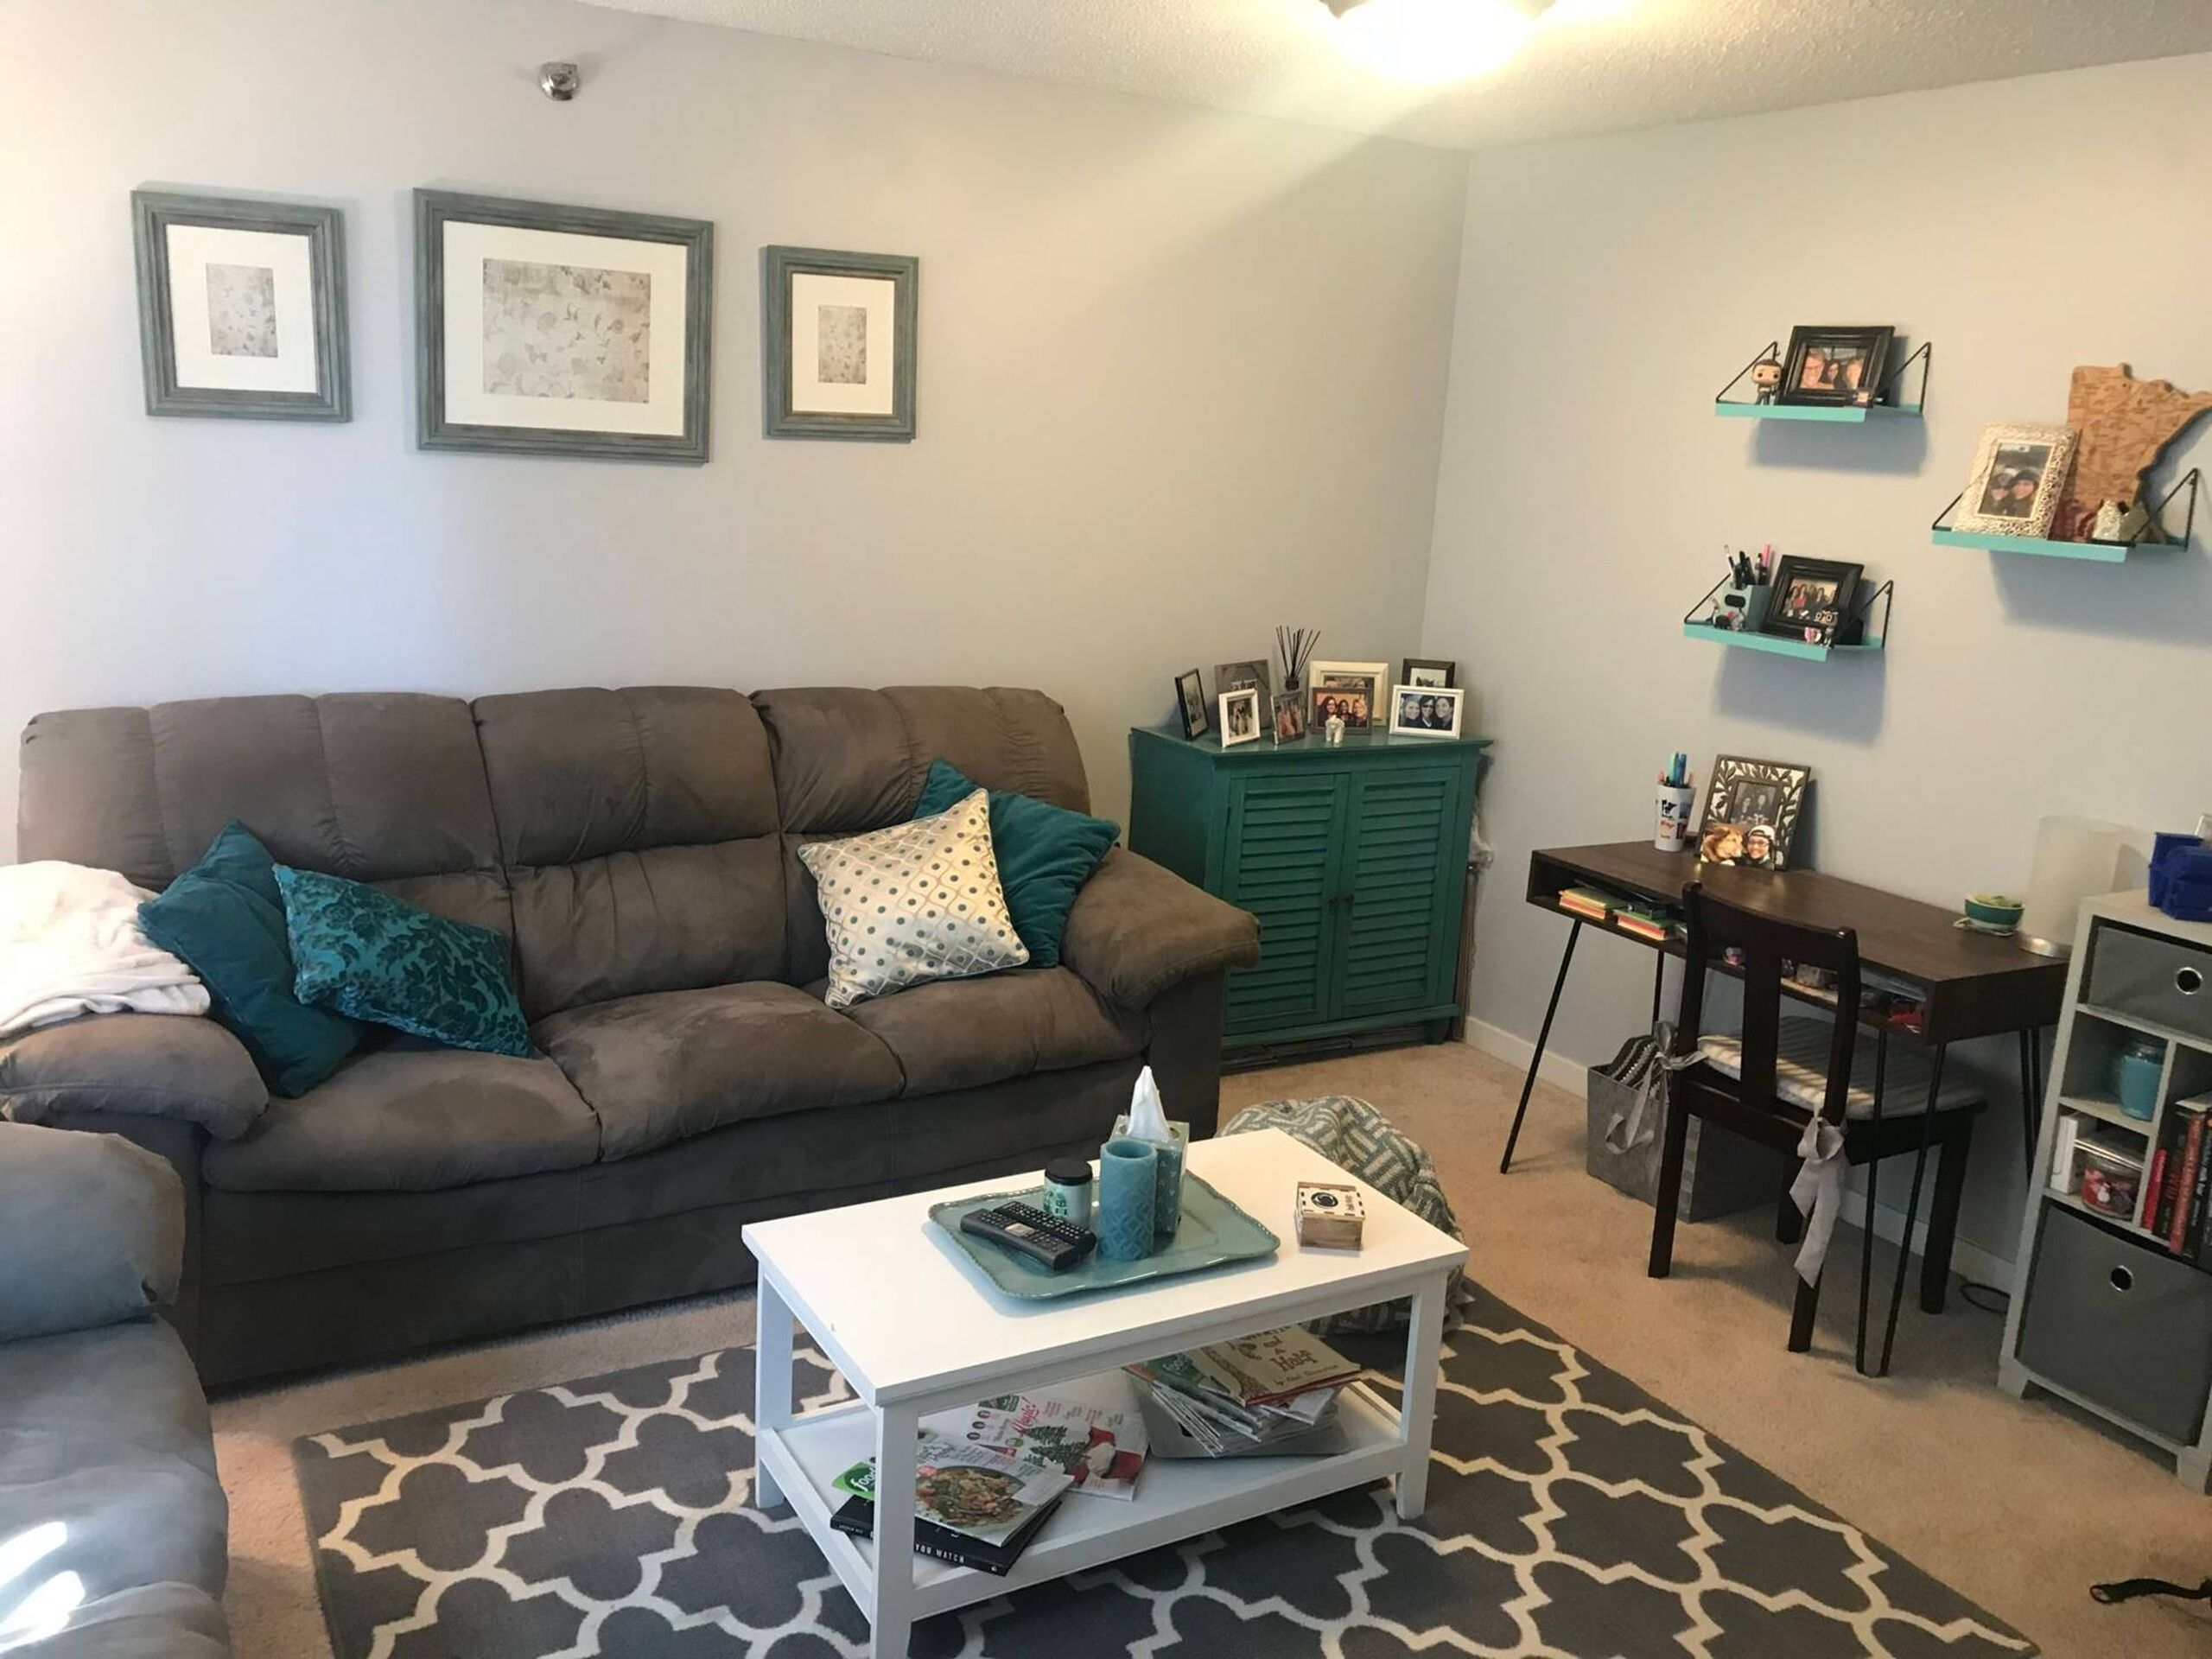 A furnished apartment living room with couch, chair, desk, coffee table, and rug REWIRE PBS living with parents